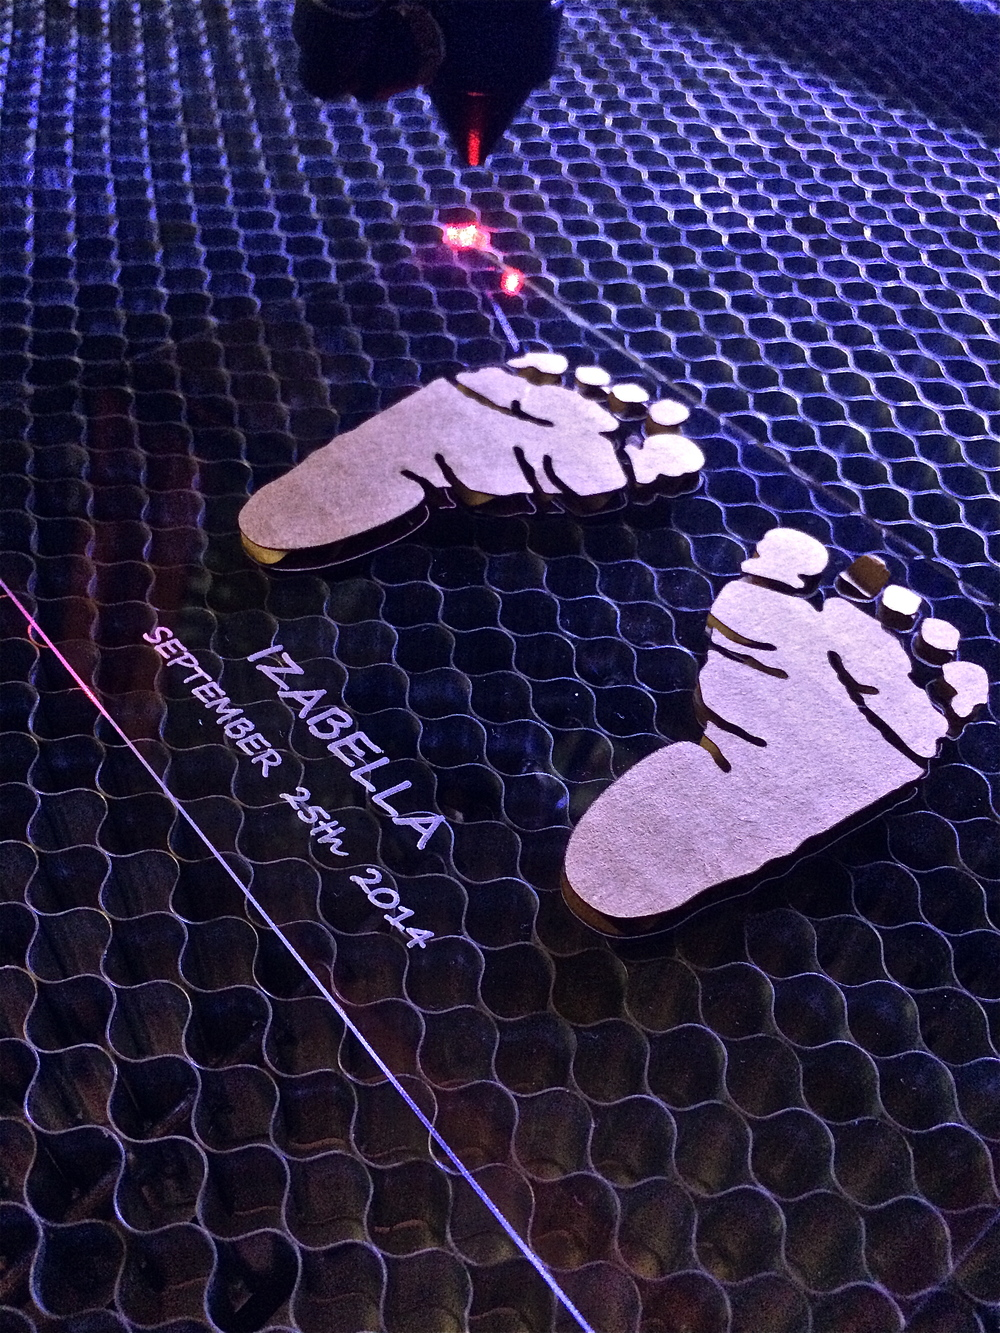 "6""x4"" Laser Cut & Etched Acrylic Sheet Inlay With Cardboard Baby Feet Cut & Glued"